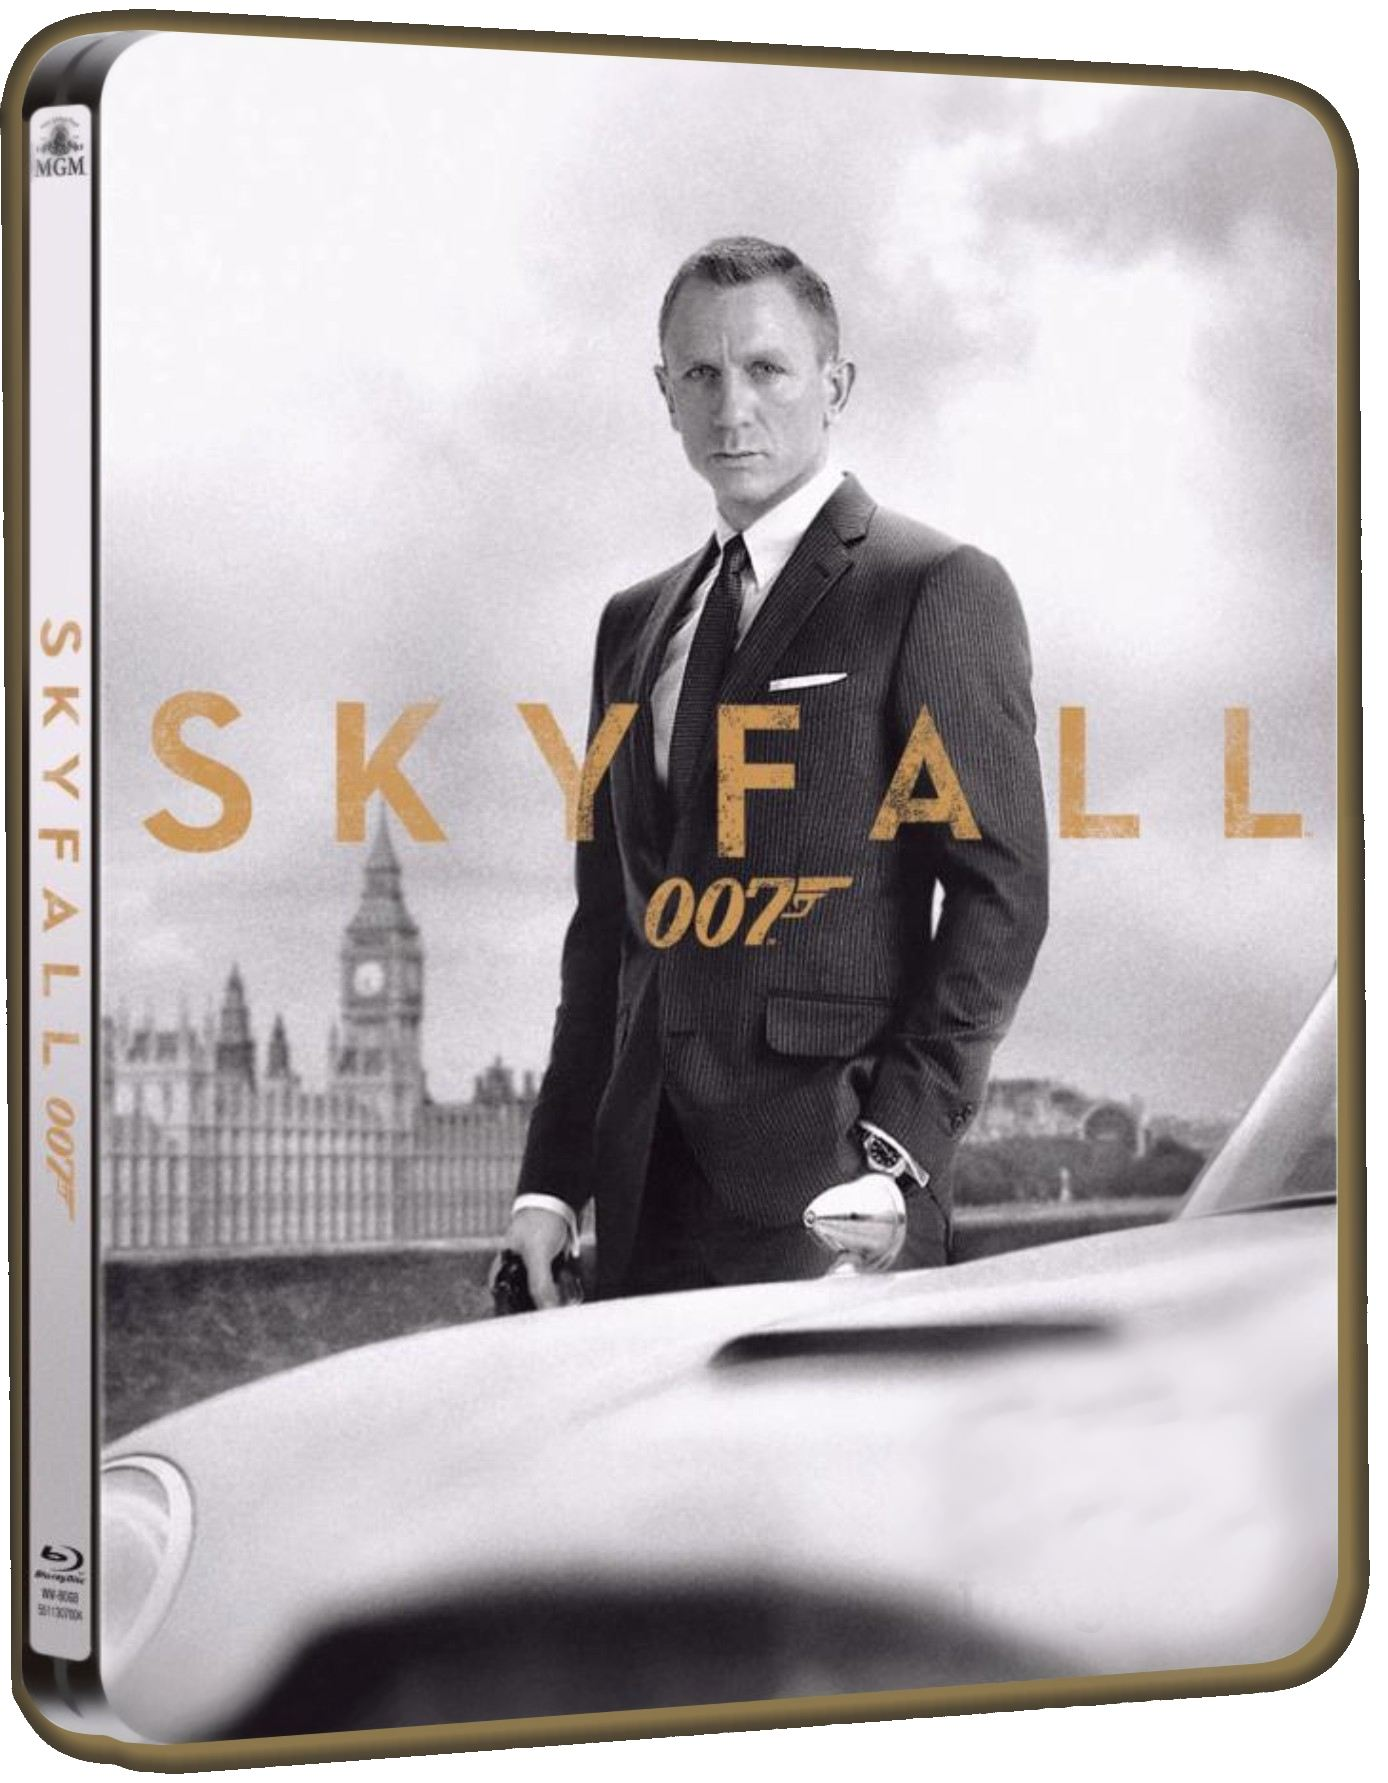 James Bond Returns: 007 Things to Know Before Seeing